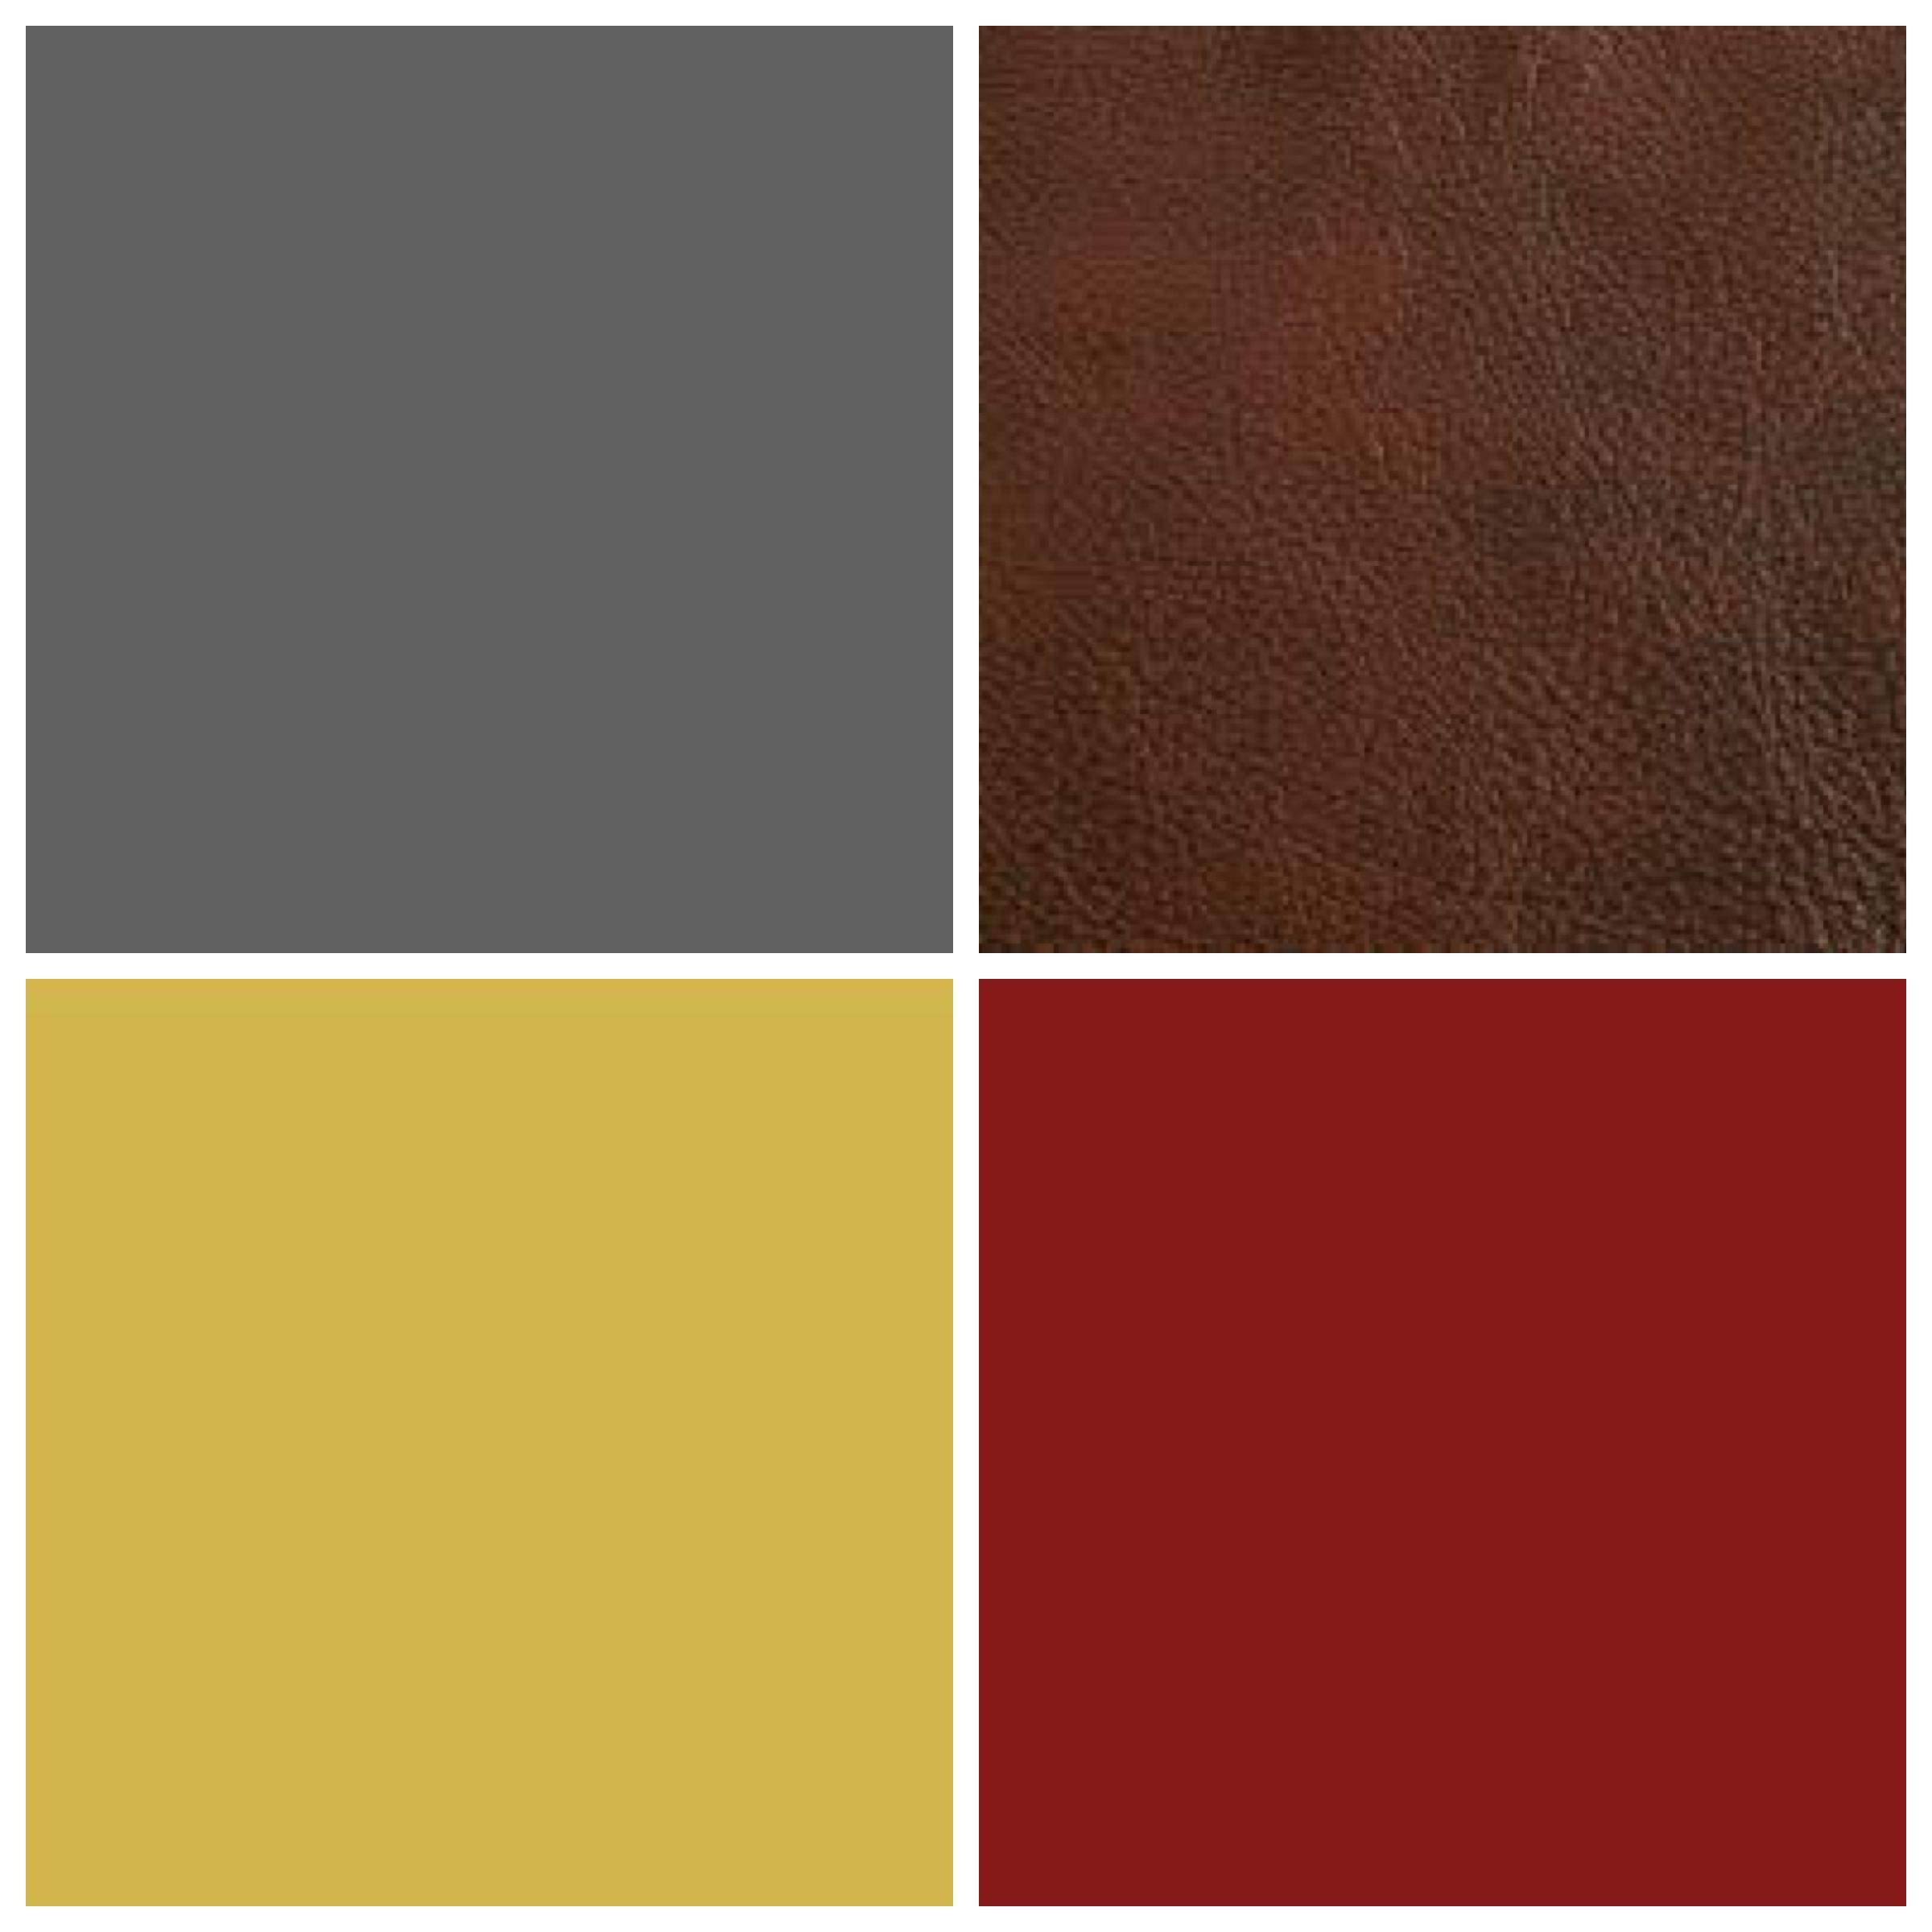 Bedroom color schemes gold - Tuscan Neutrals Our Master Bedroom Color Palette Charcoal Gray Country Red Espresso Brown Yellow Gold Leather And Gray Upholstered Furniture